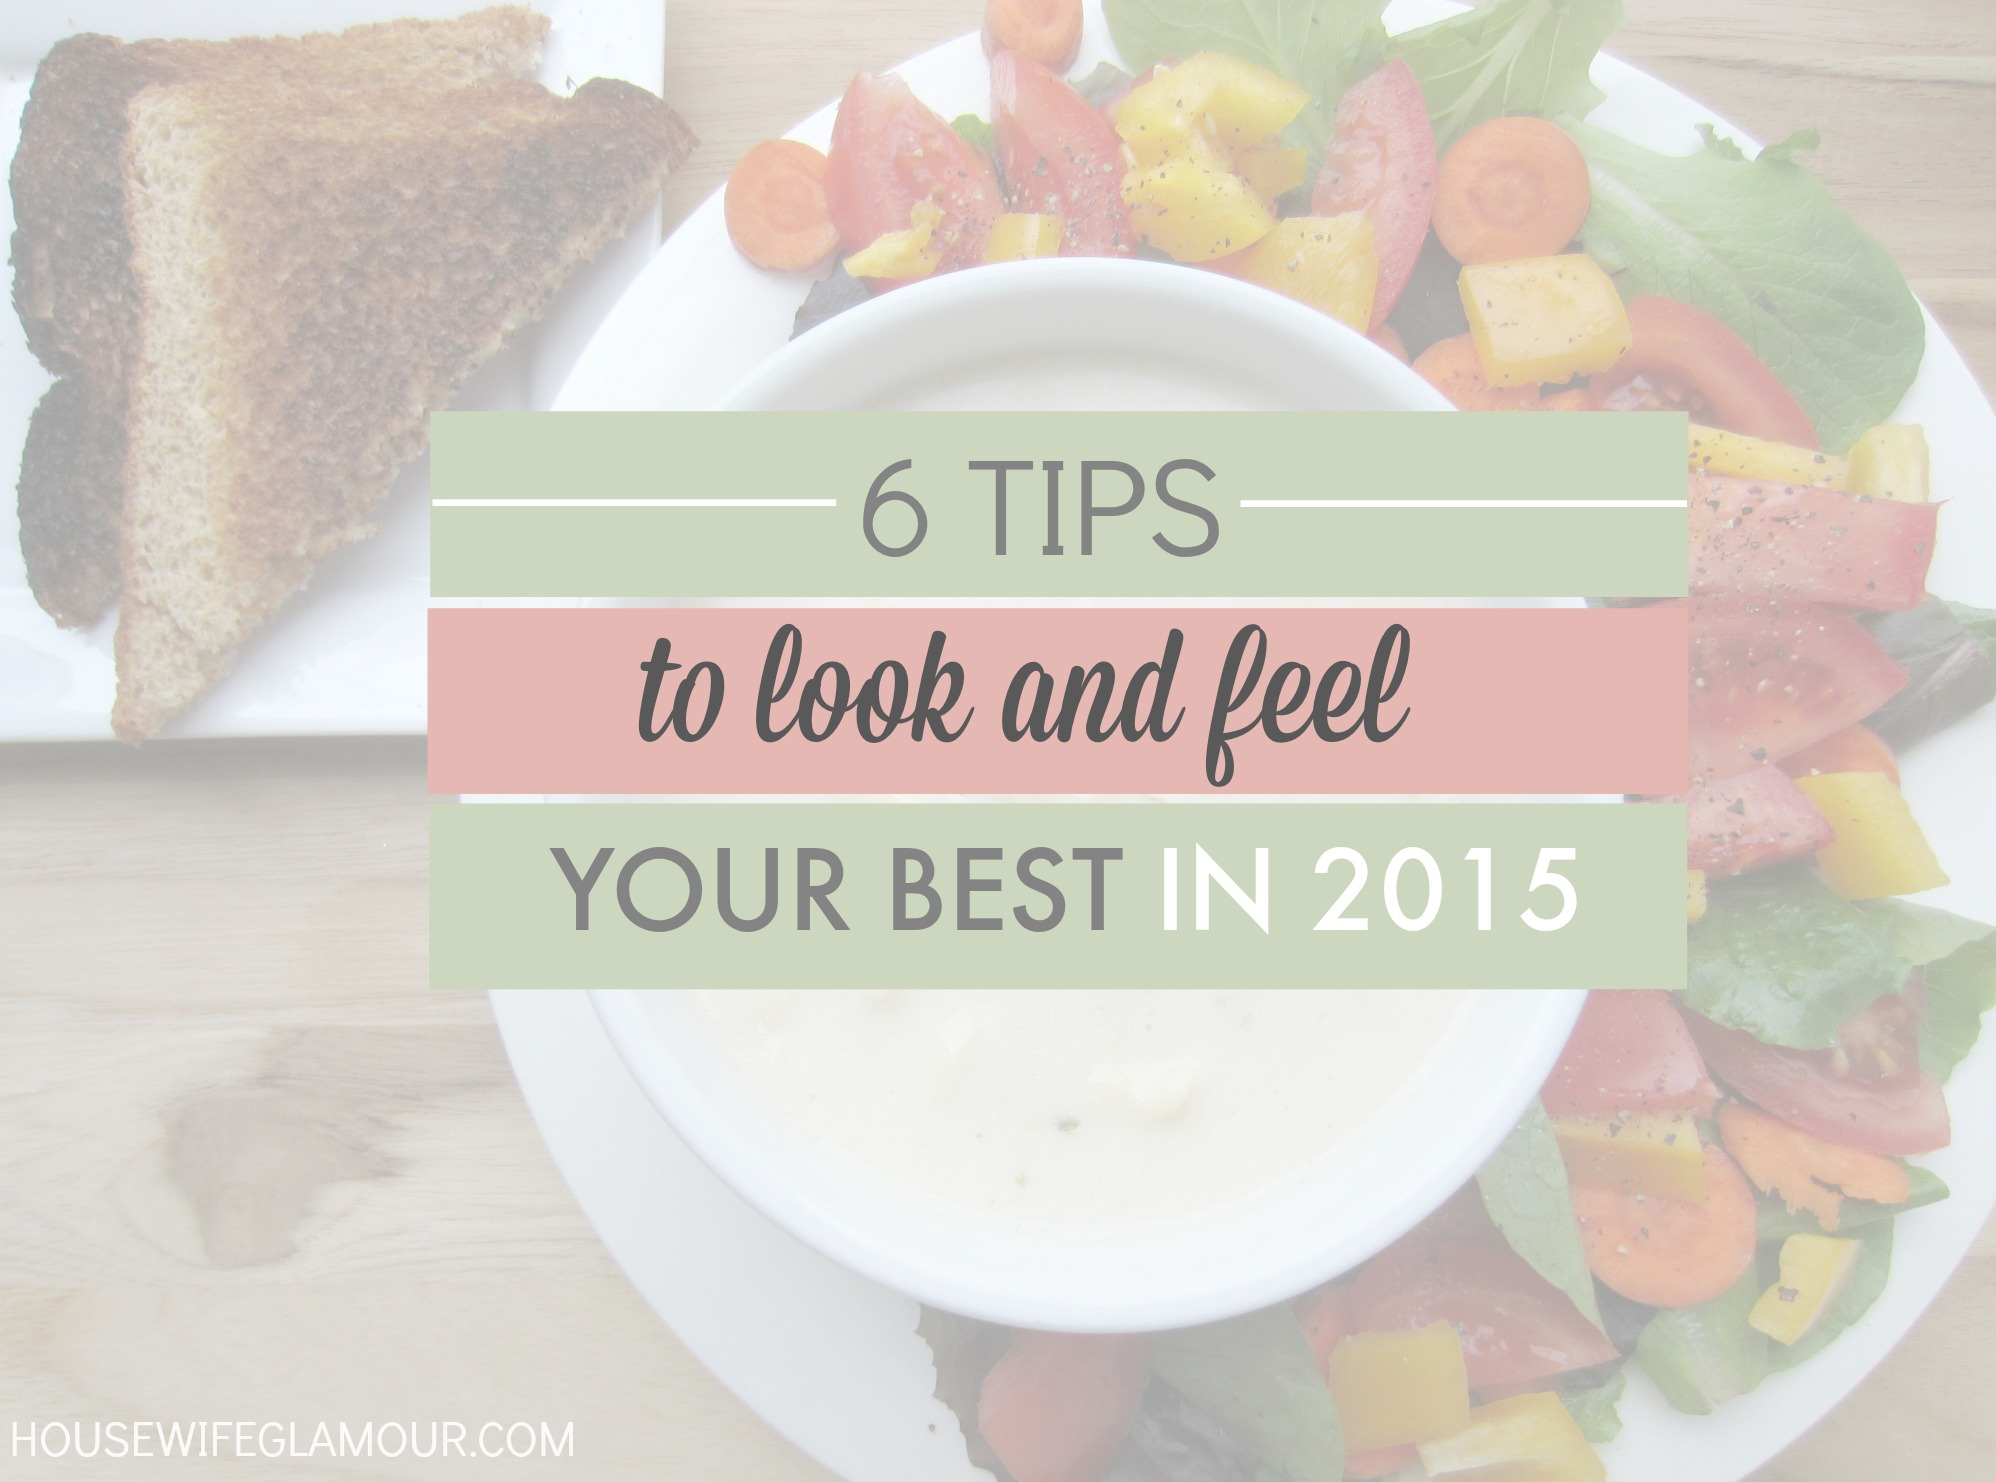 Tips to Look and Feel Your Best in 2015